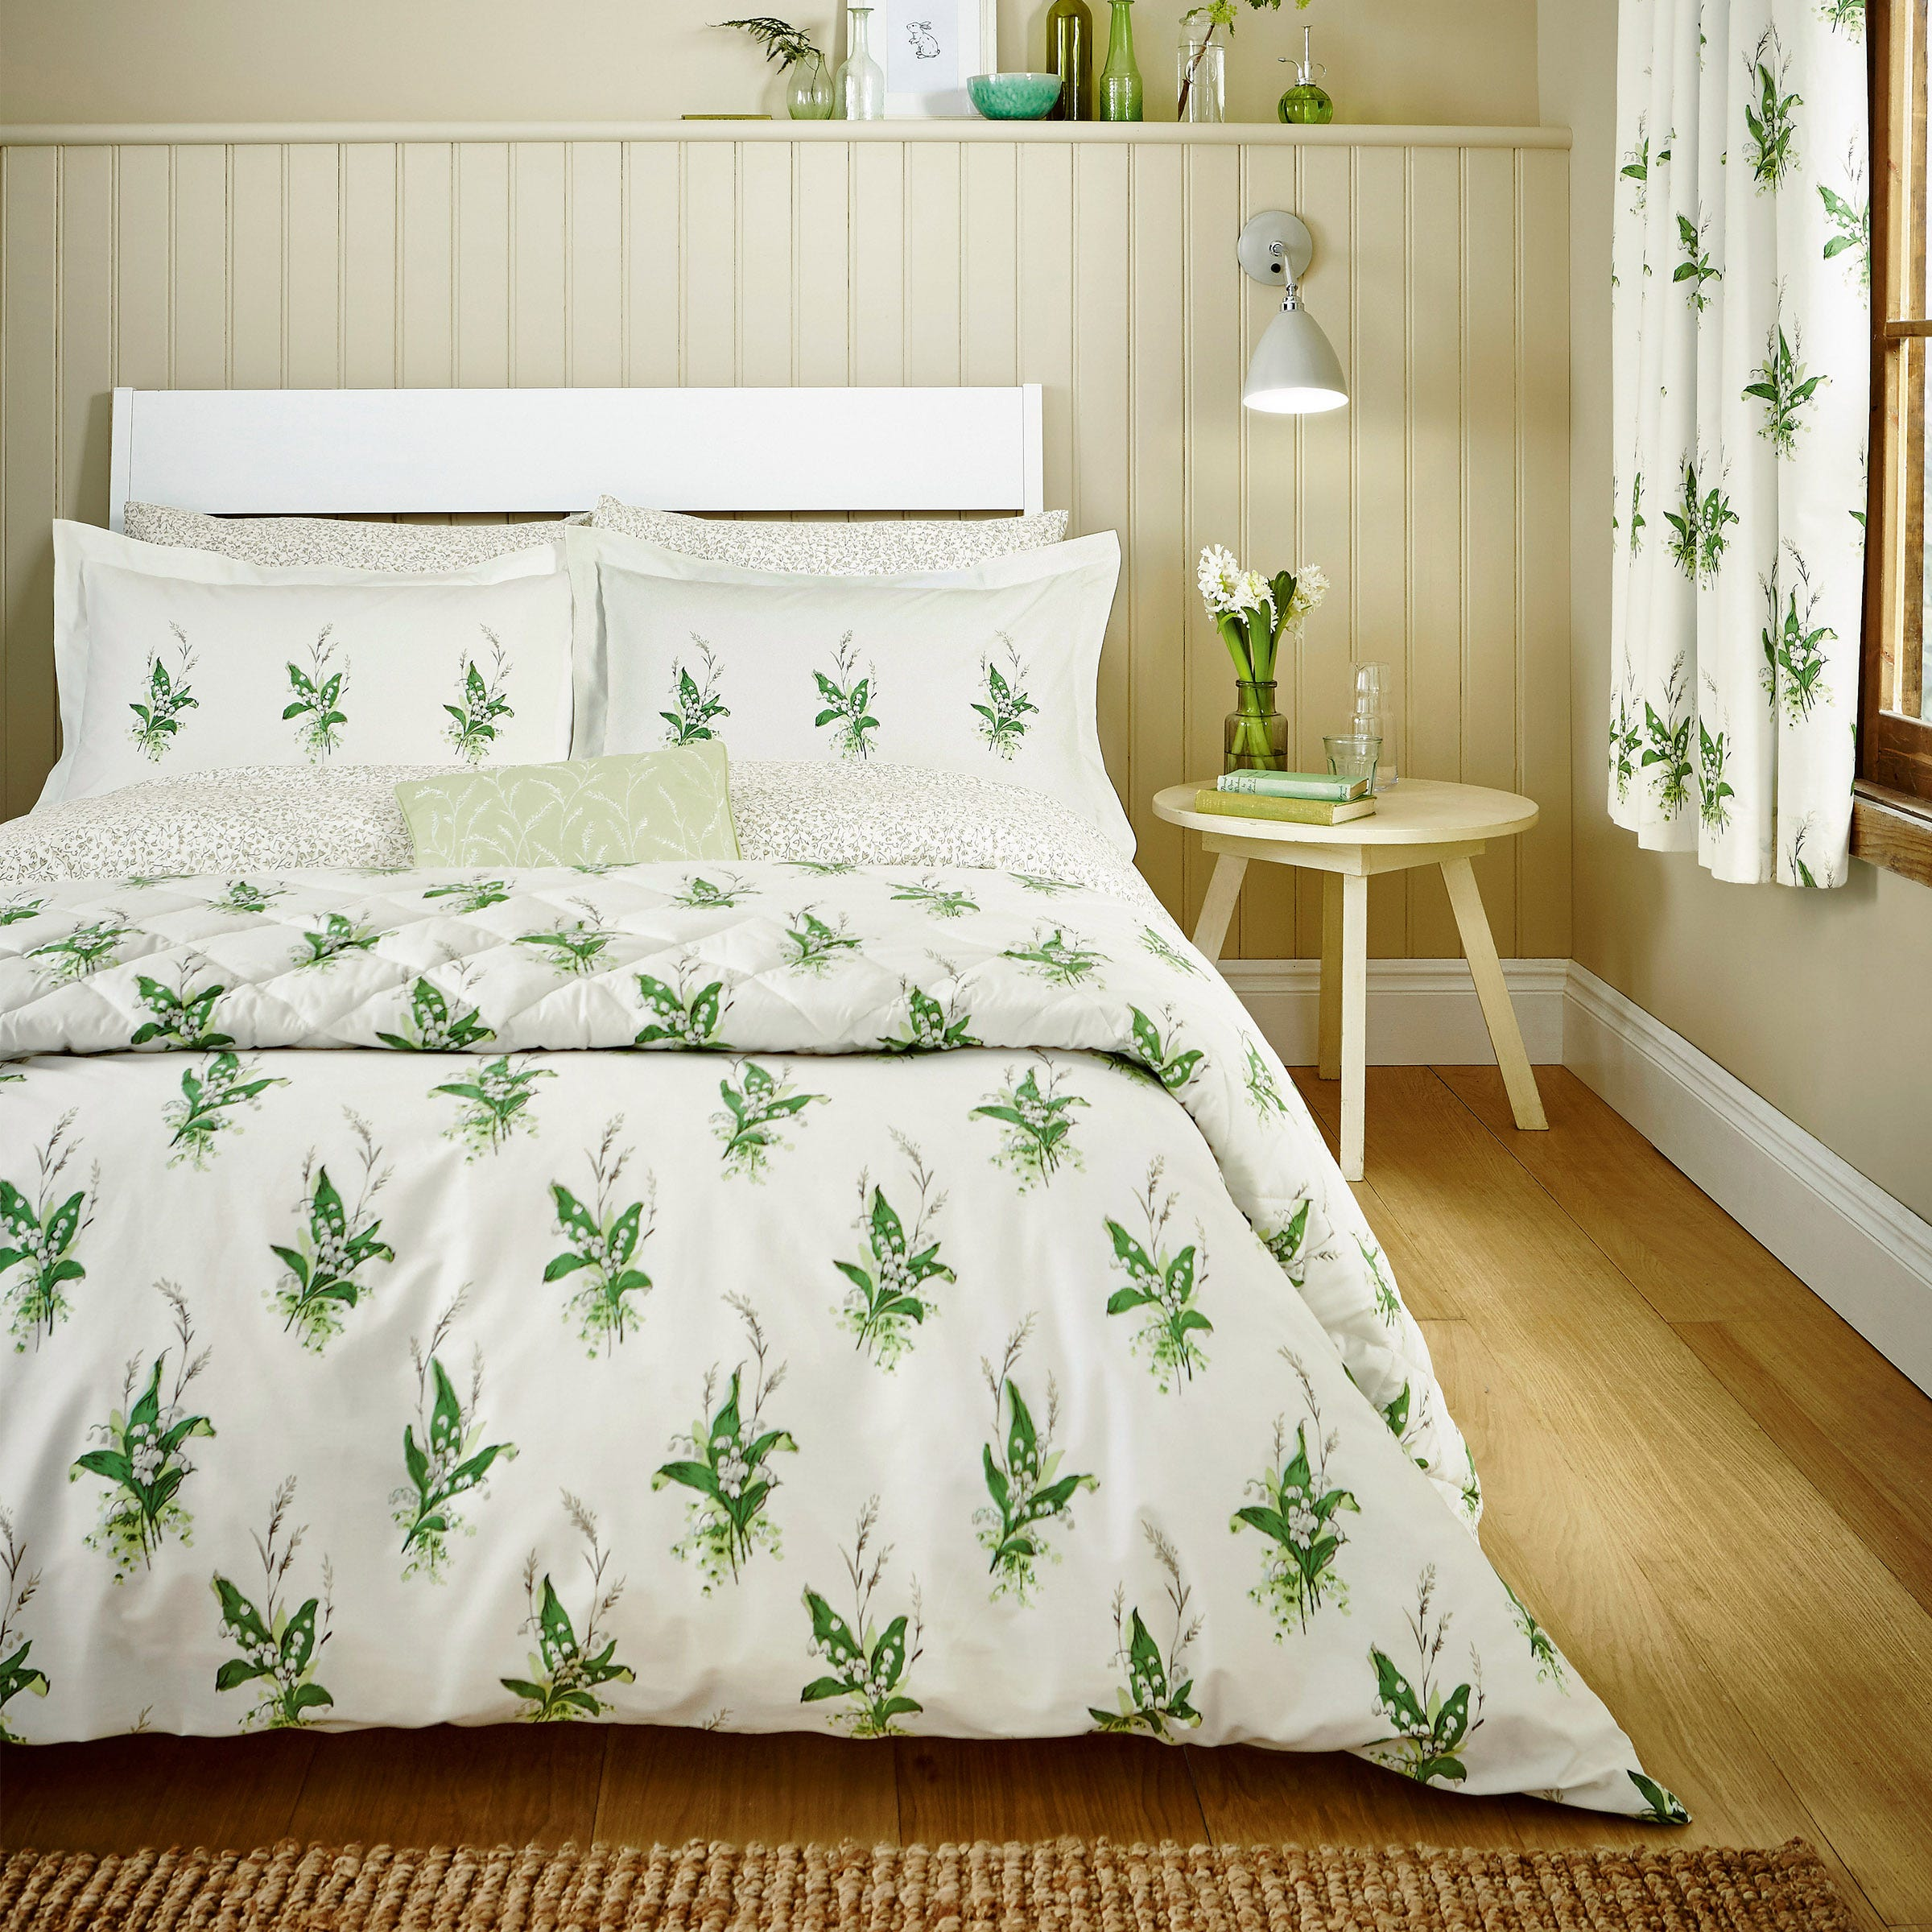 Sanderson Bedding Muguet Super Kingsize Duvet Cover EmeraldIvory